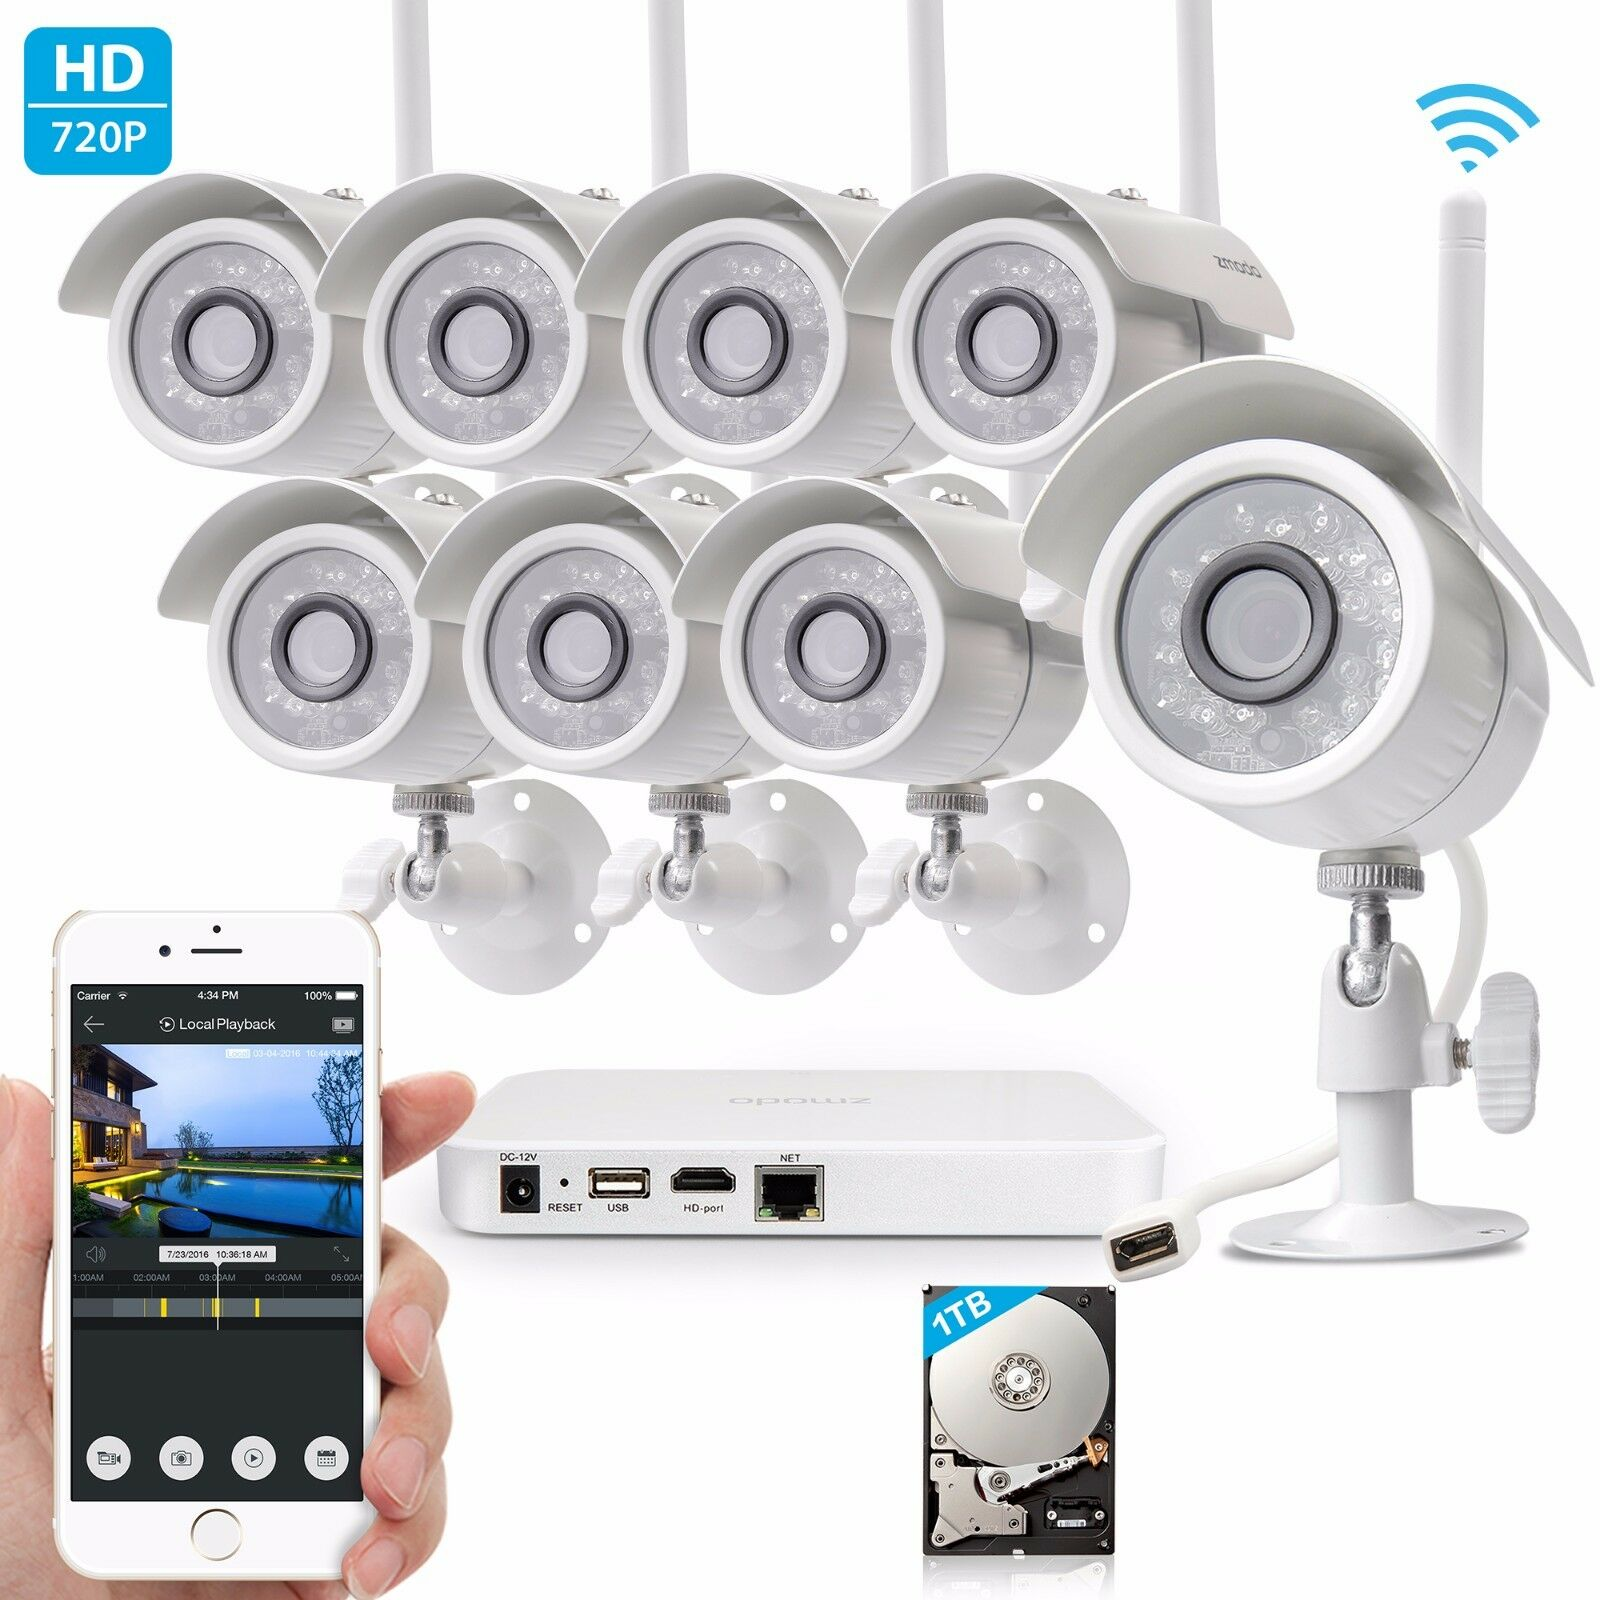 Zmodo 1080p HDMI 8CH NVR System With (8) 1.0 Megapixel Wireless Cameras 1TB